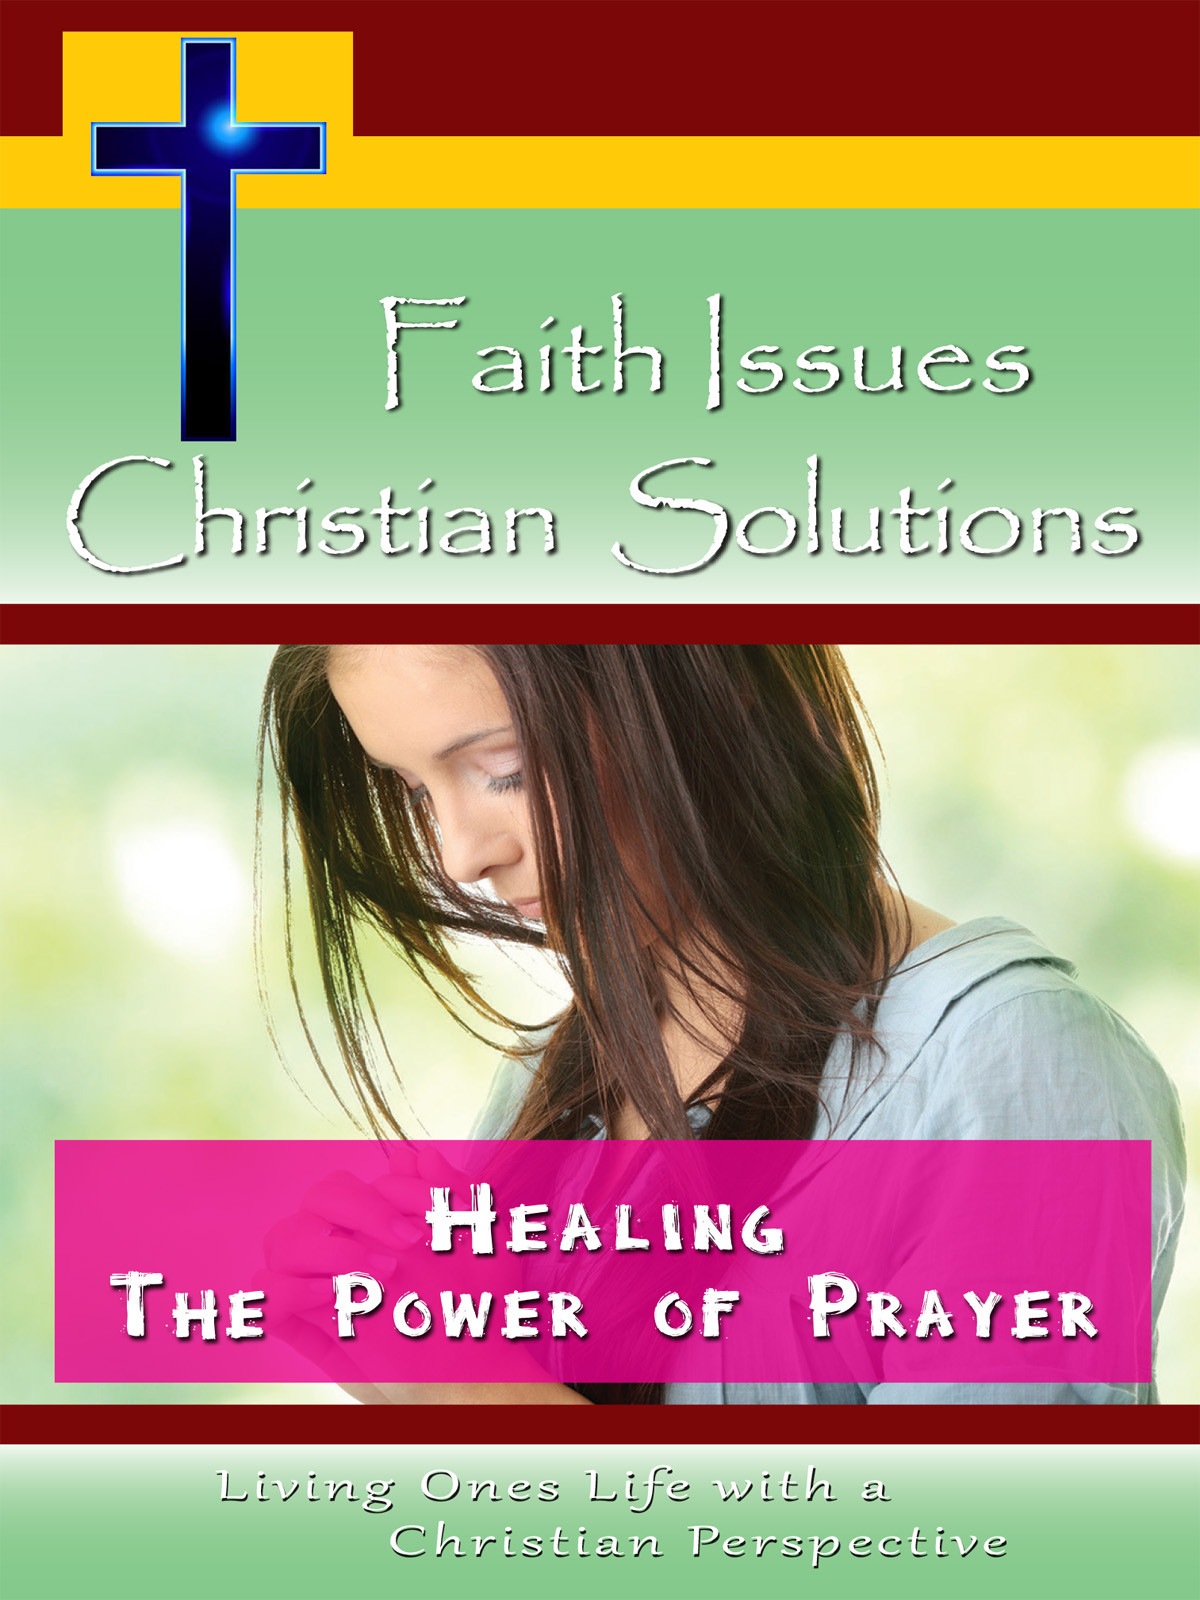 CH10018 - Healing The Power of Prayer